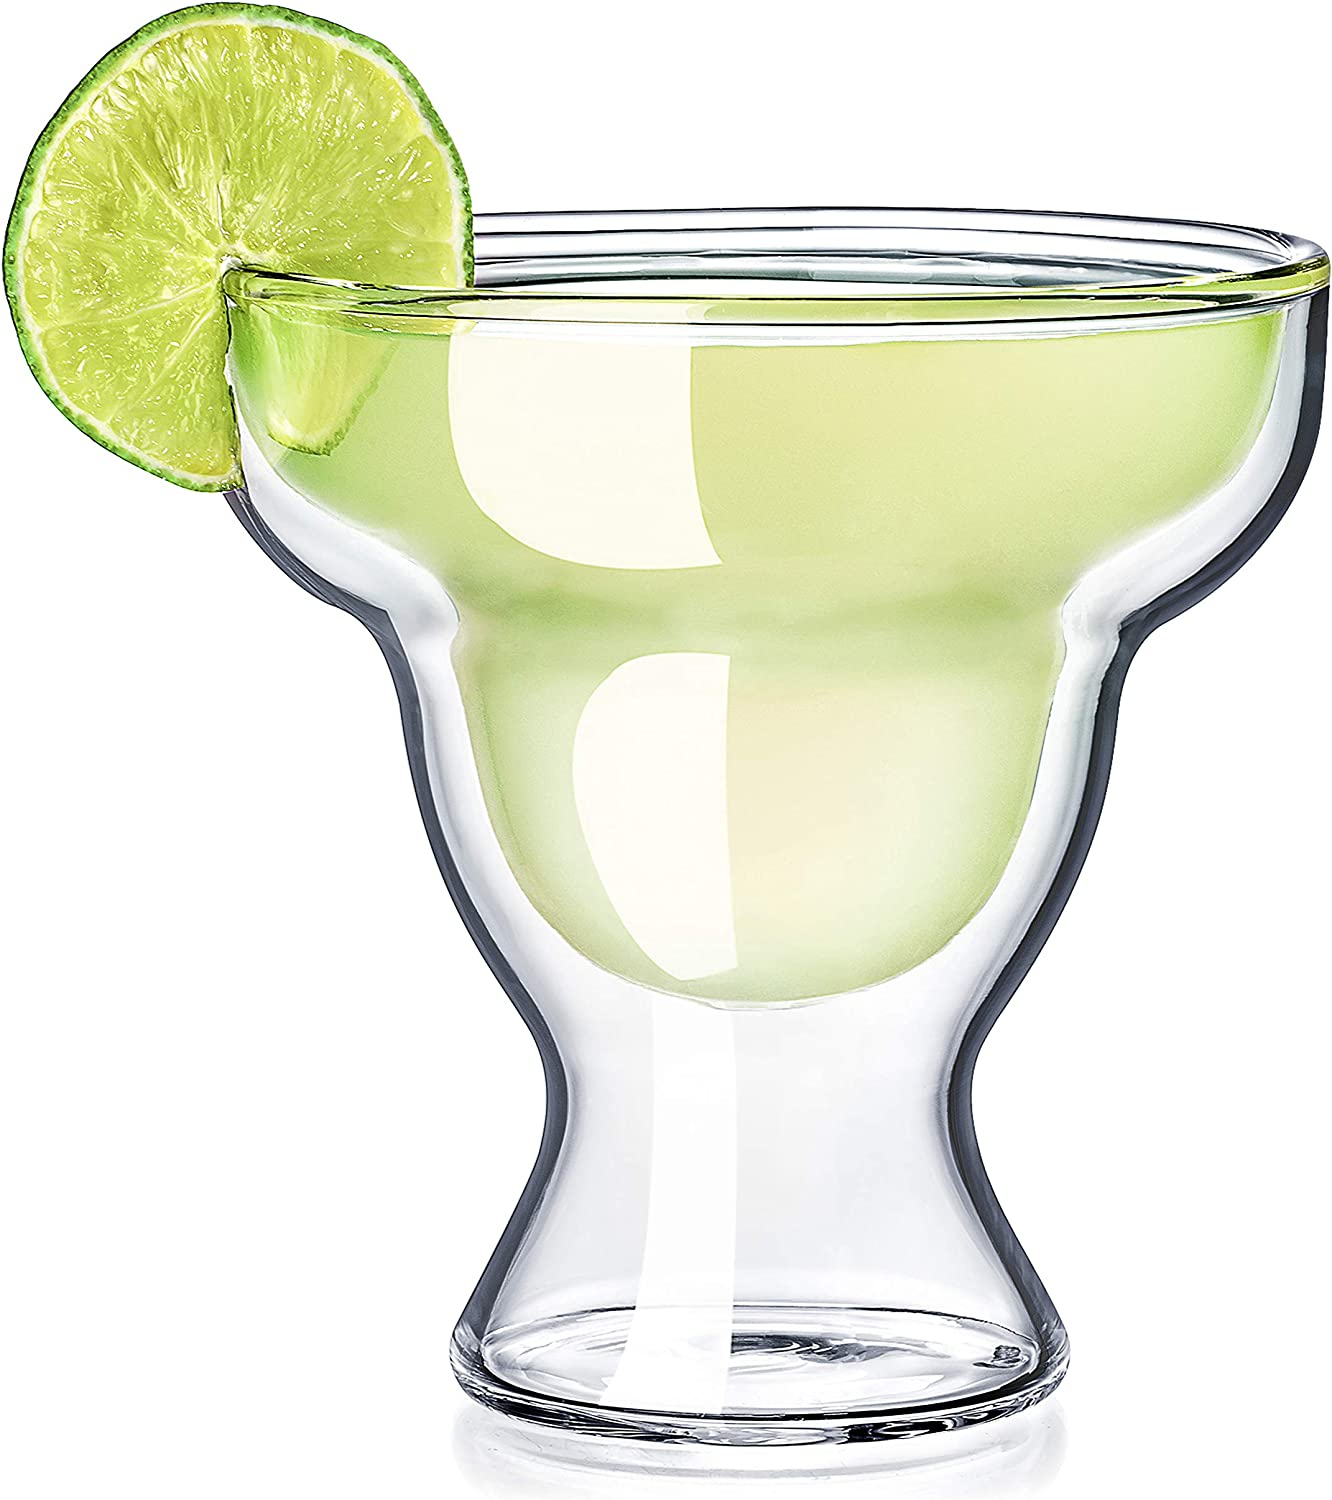 Dragon Glassware Margarita Glasses, Stemless Insulating Double Walled Bar Glasses, 12-Ounce, Set of 2